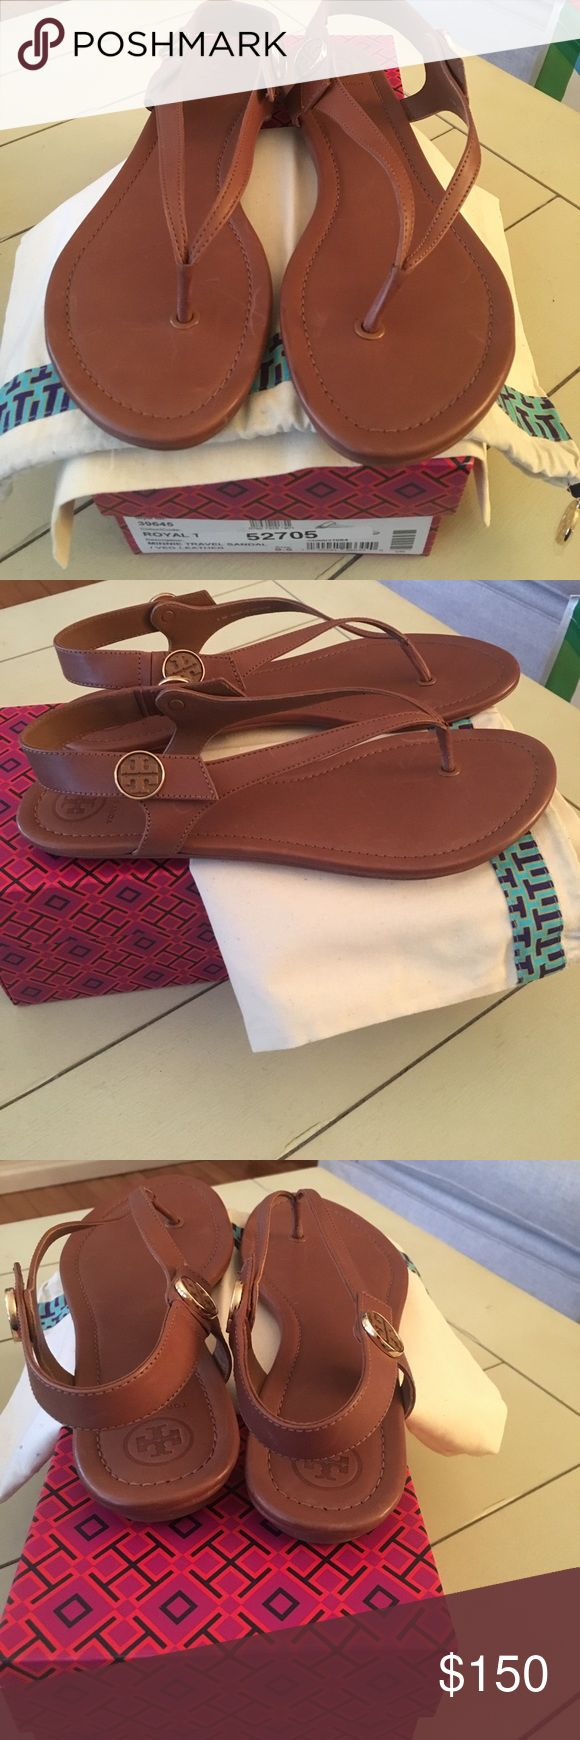 Brand new Tory Burch Minnie leather sandals Brand new comes with box and travel bag Tory Burch Minnie tan leather sandals. Has Tory Burch emblem on either side of ankle straps. Size 9.5 Tory Burch Shoes Sandals